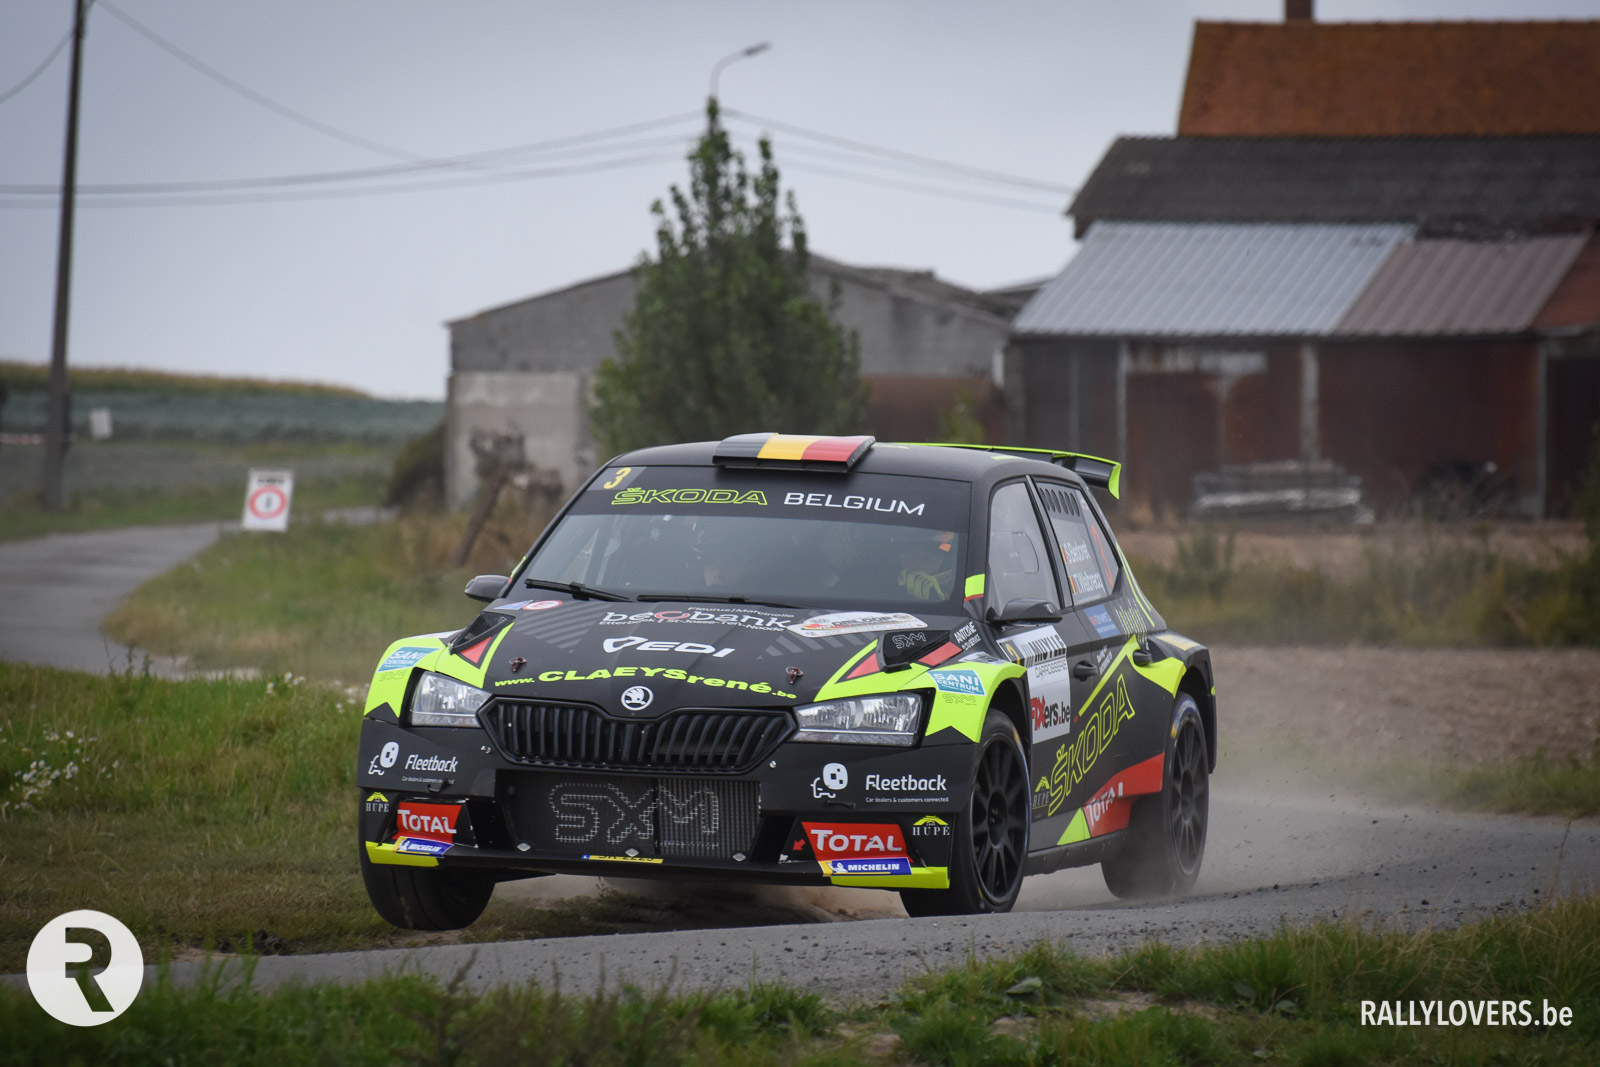 Preview - East Belgian Rally - Sébastien Bedoret